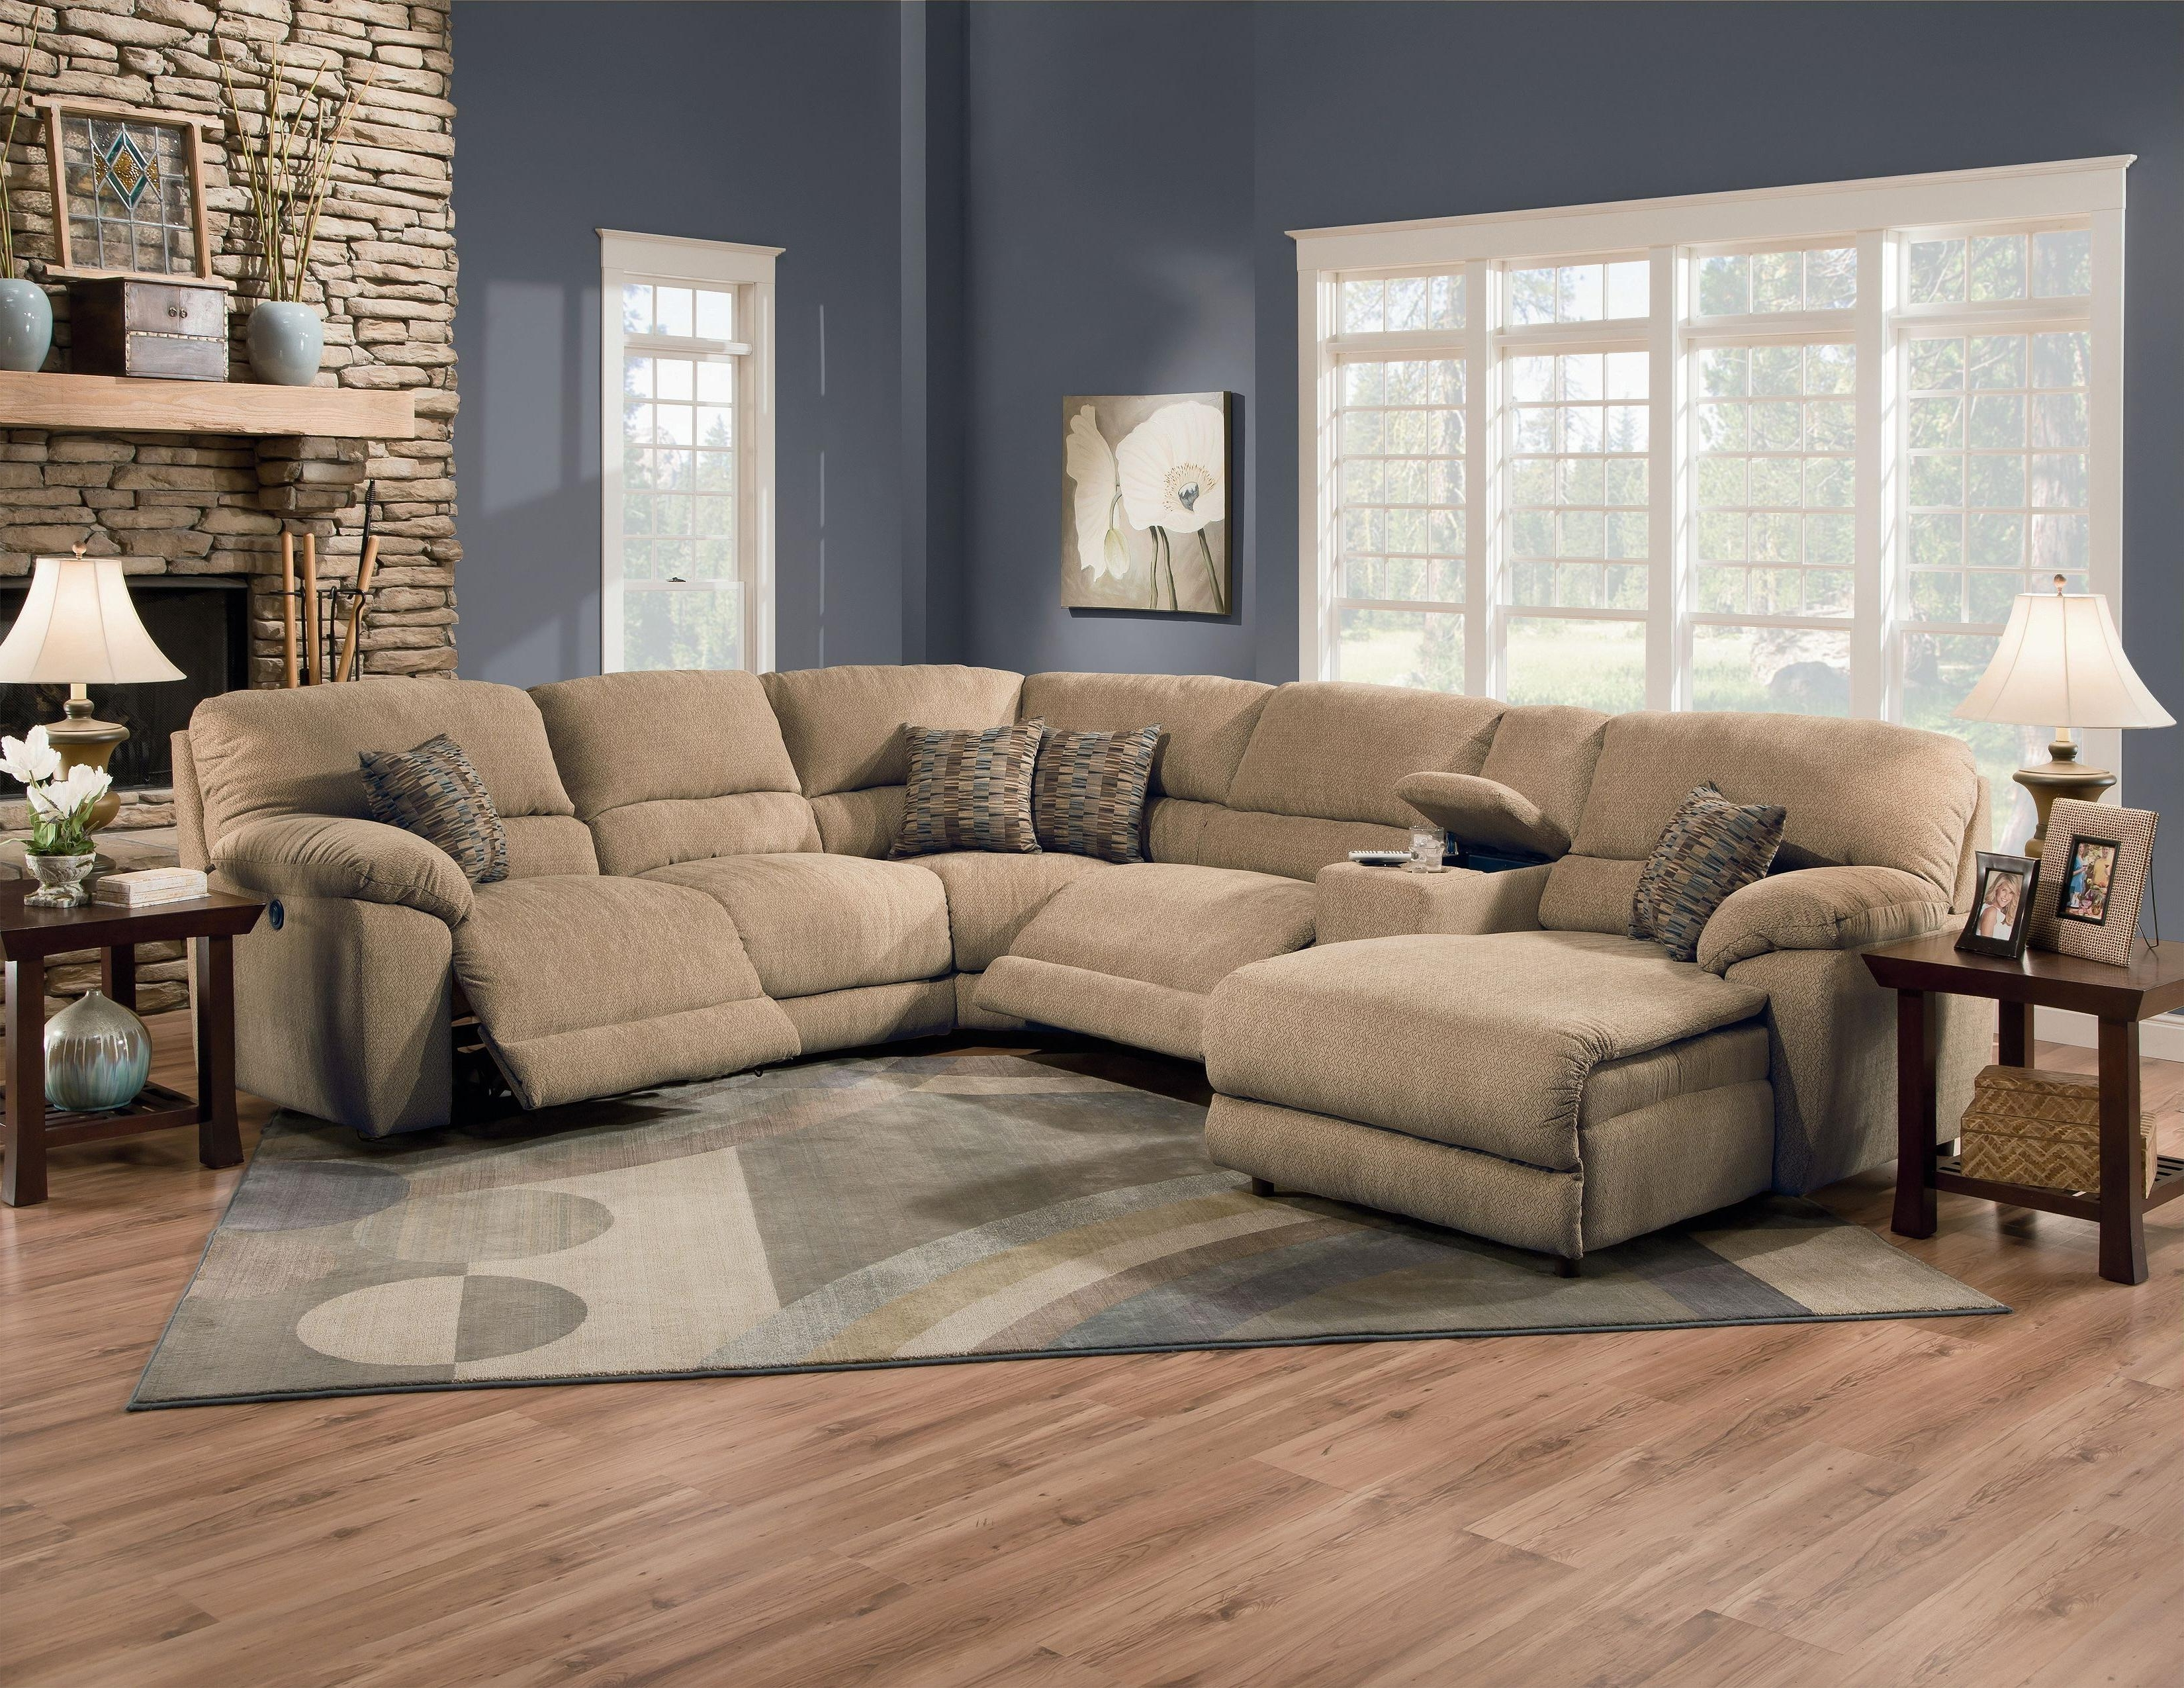 2019 Lane Furniture: Rivers Collection Featuring Power Reclining For Johnson City Tn Sectional Sofas (View 17 of 20)